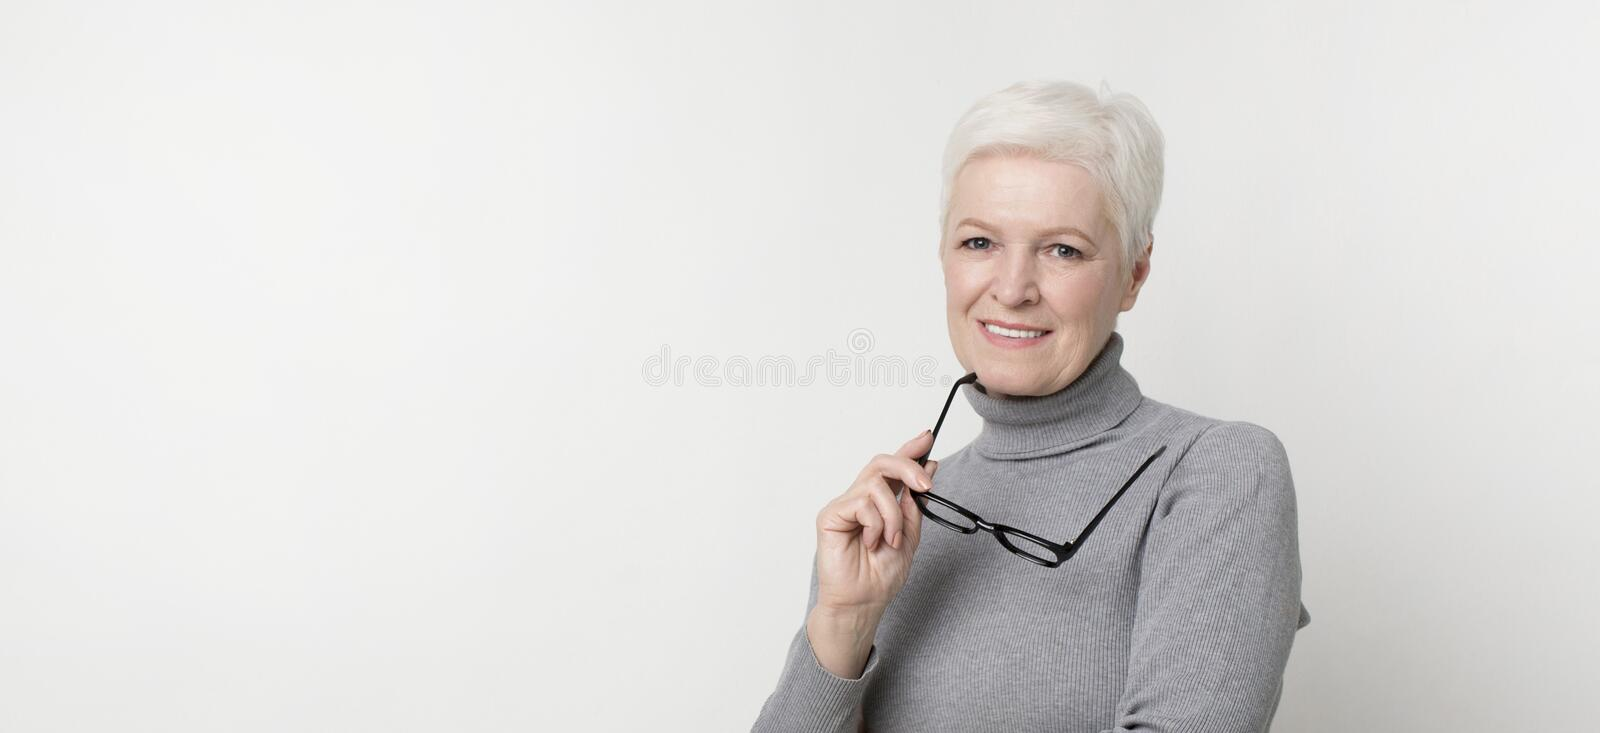 Confident aged businesswoman holding glasses looking at camera royalty free stock photography